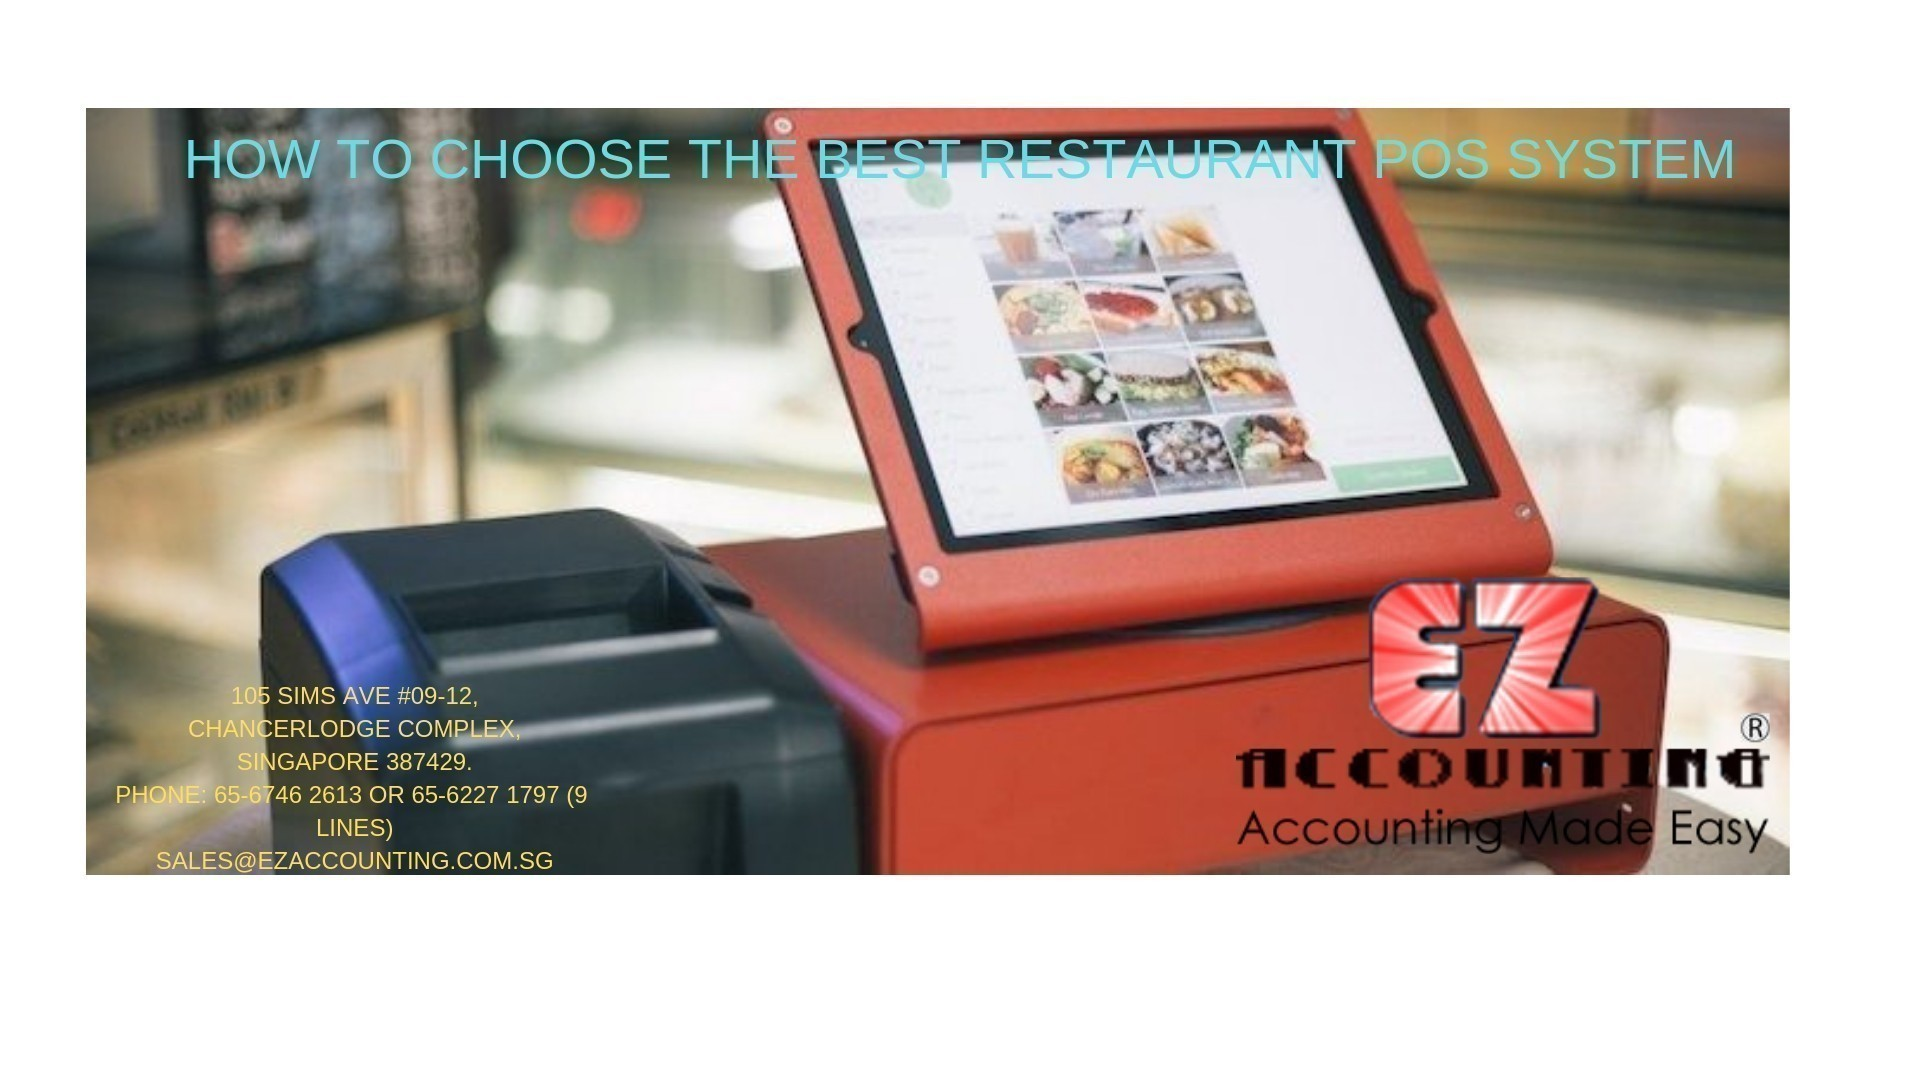 HOW-TO-CHOOSE-POS